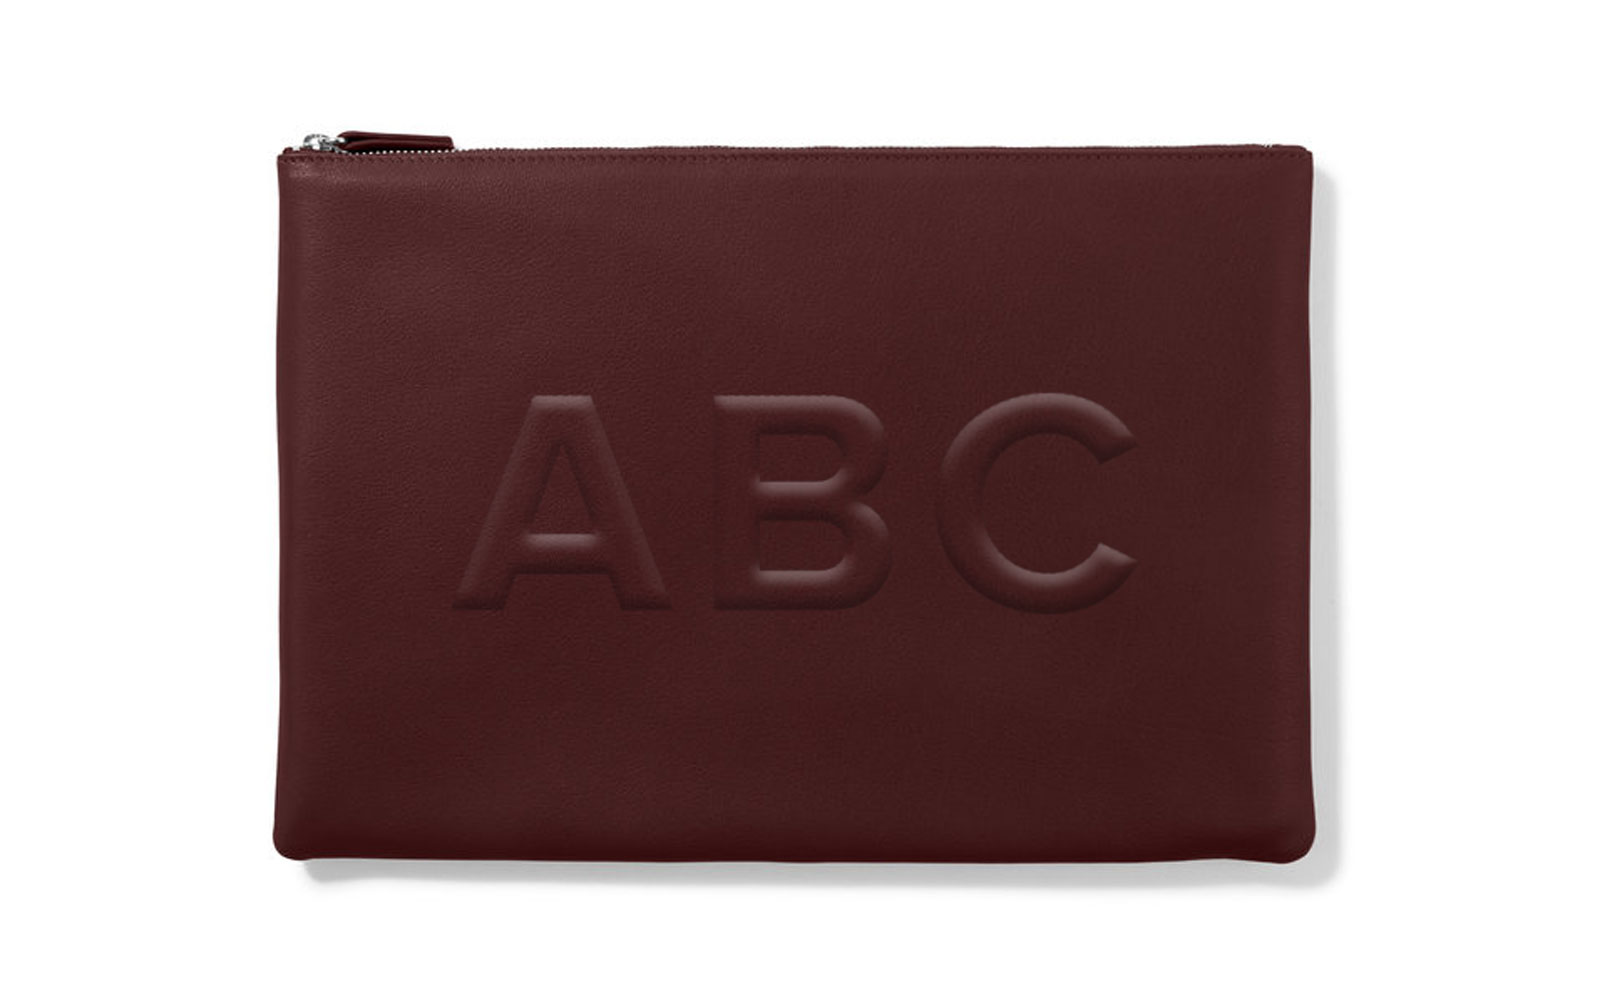 Maroon leather monogrammed pouch